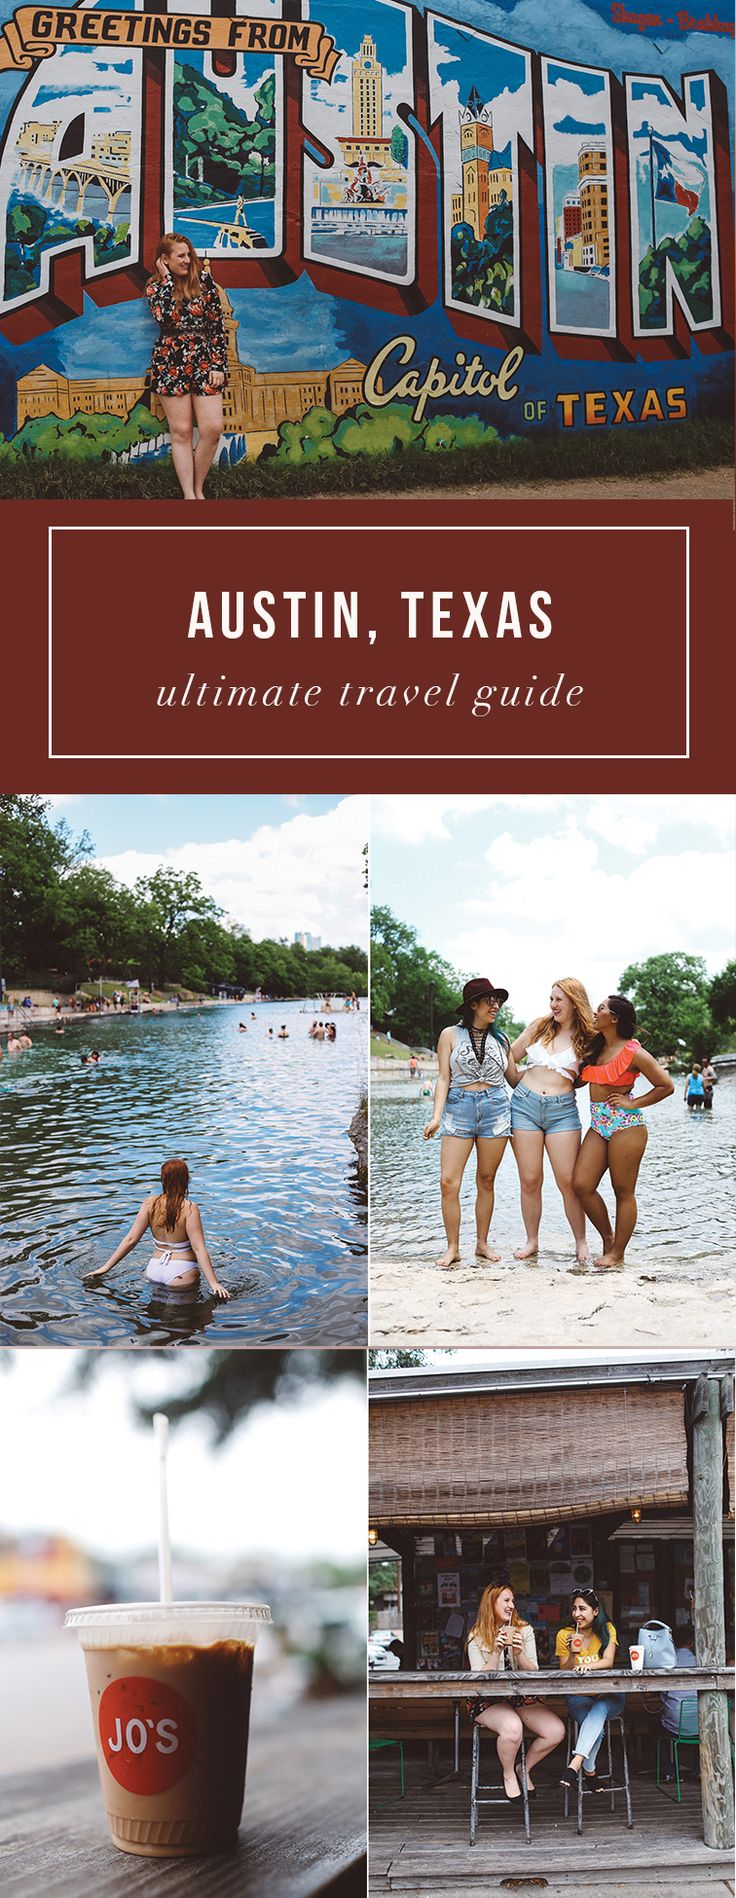 72 Hours in Austin, Texas, travel guide. Everything to see and do in Austin. Jo's Coffee, I love you so much wall, Barton Springs. Read here: http://whimsysoul.com/ultimate-austin-travel-guide/